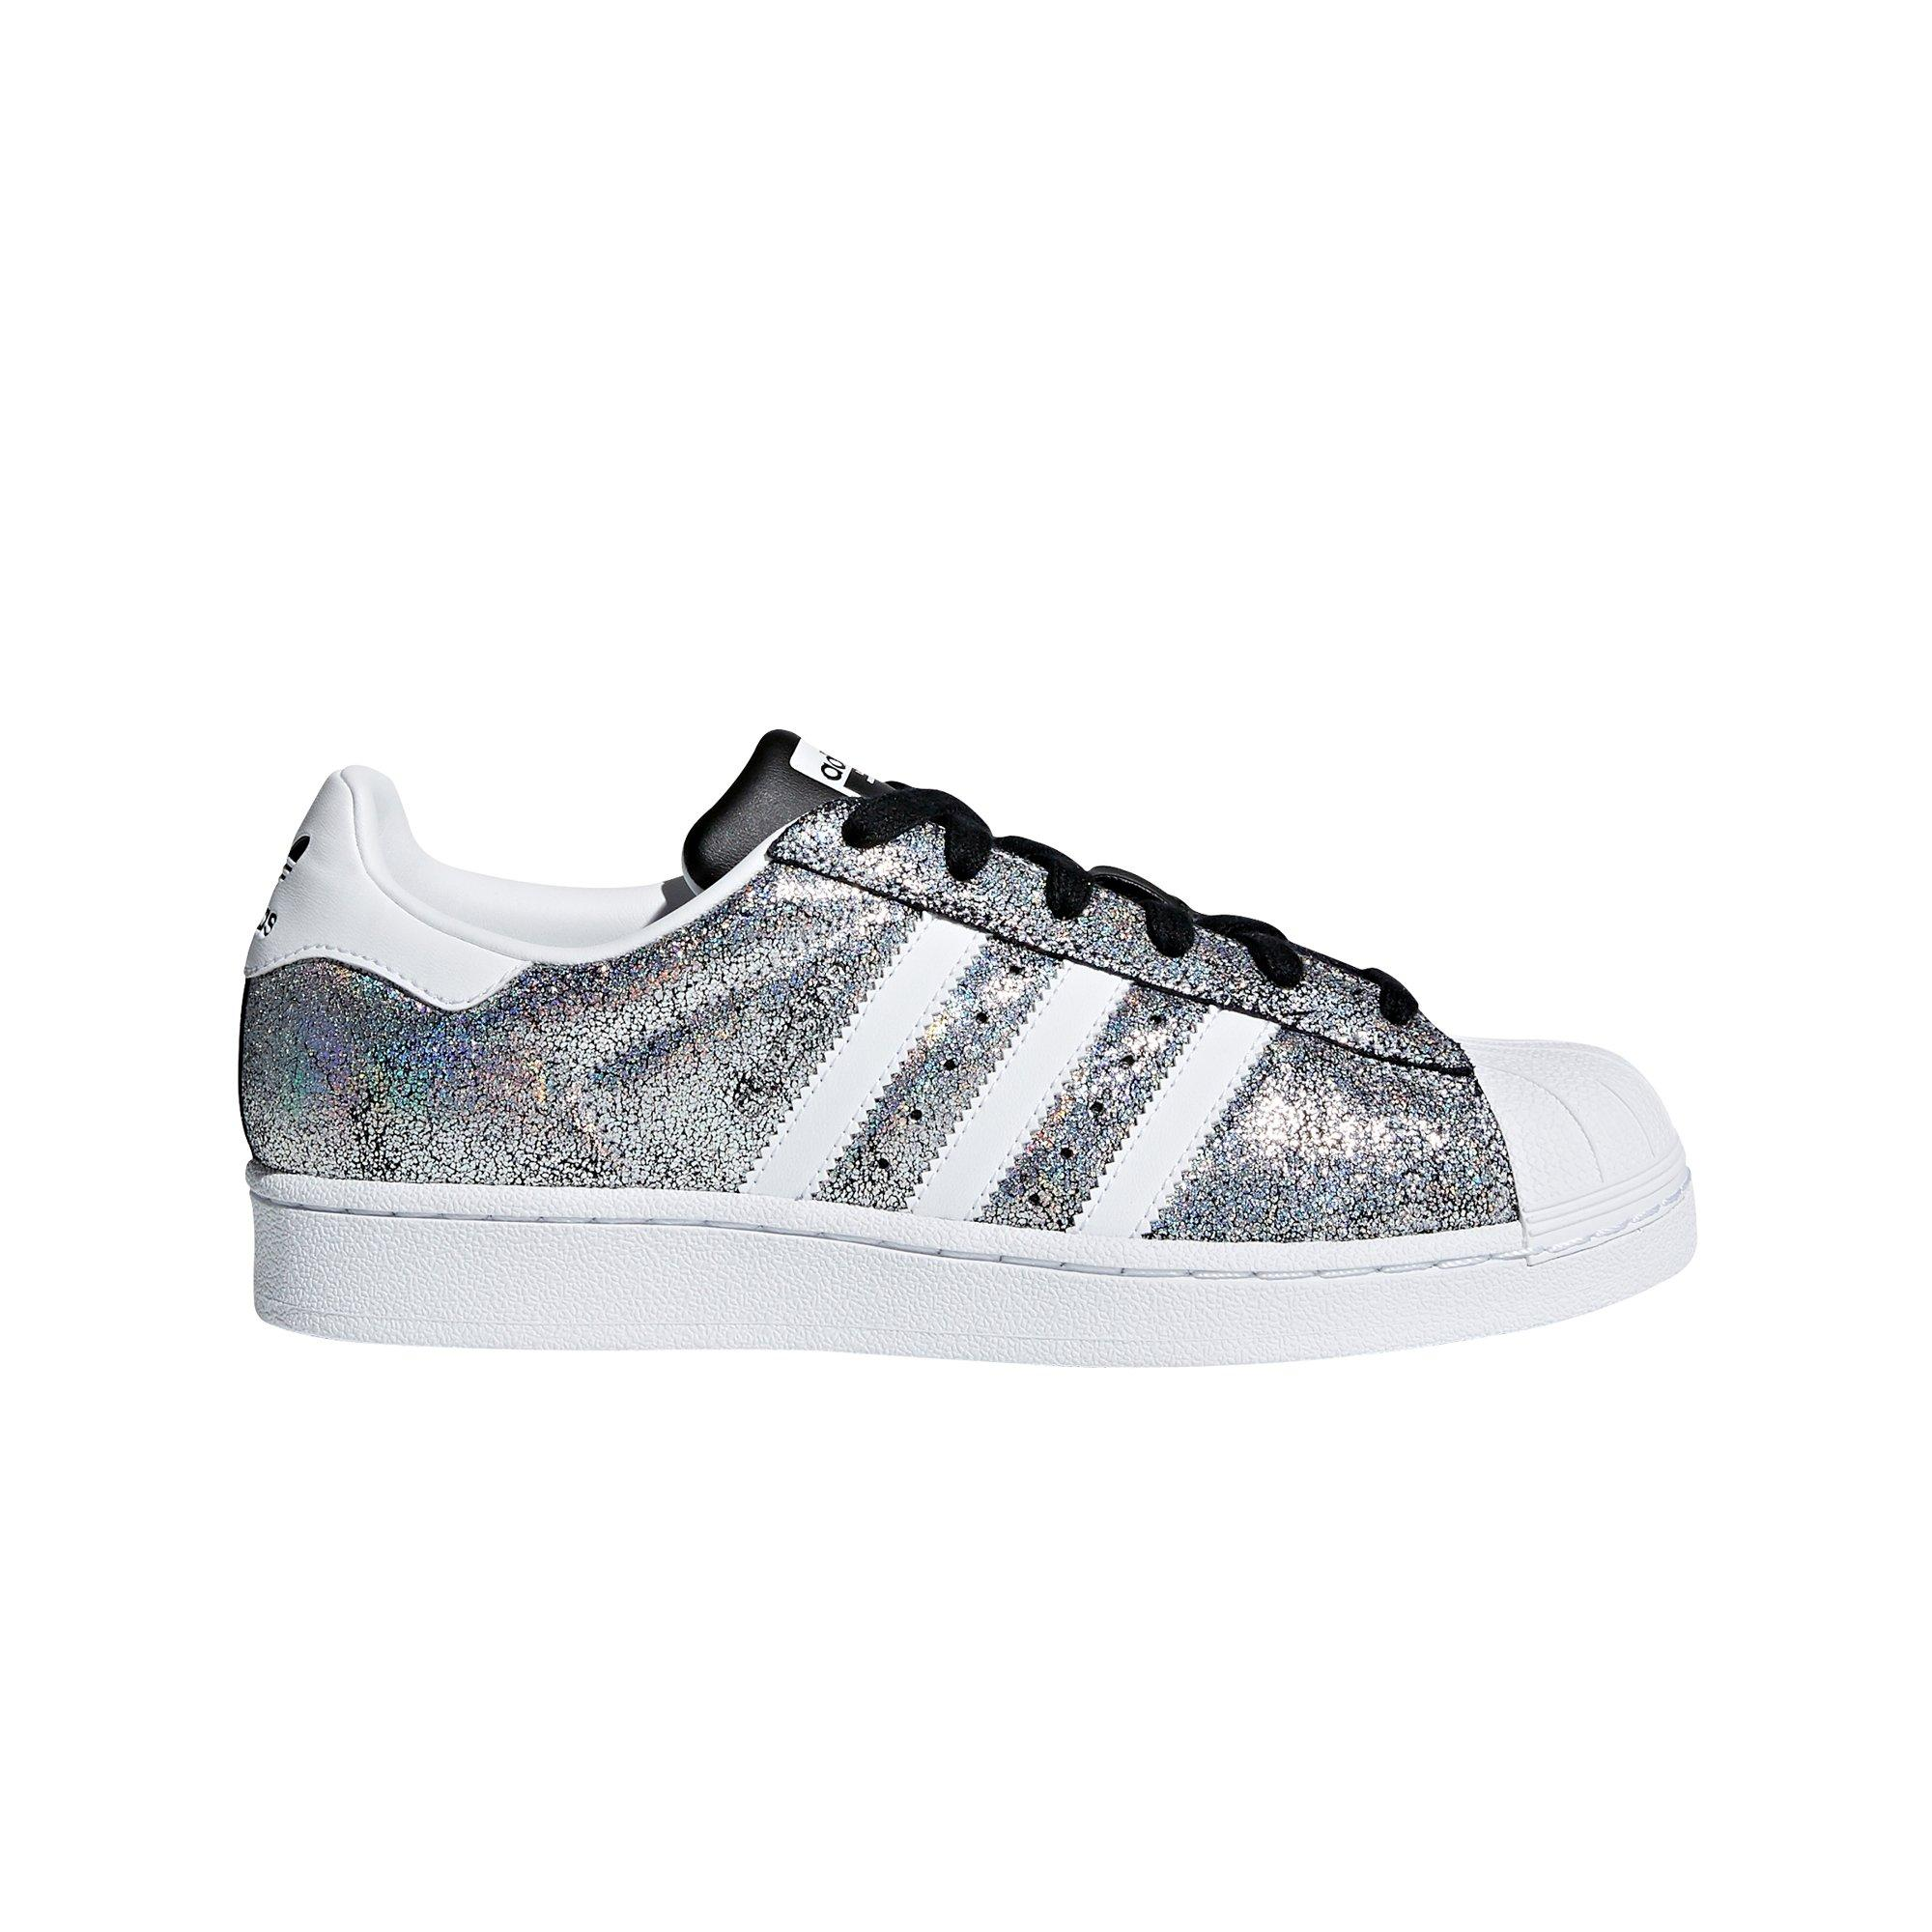 adidas Superstar \'Glitter\' Women's Shoe